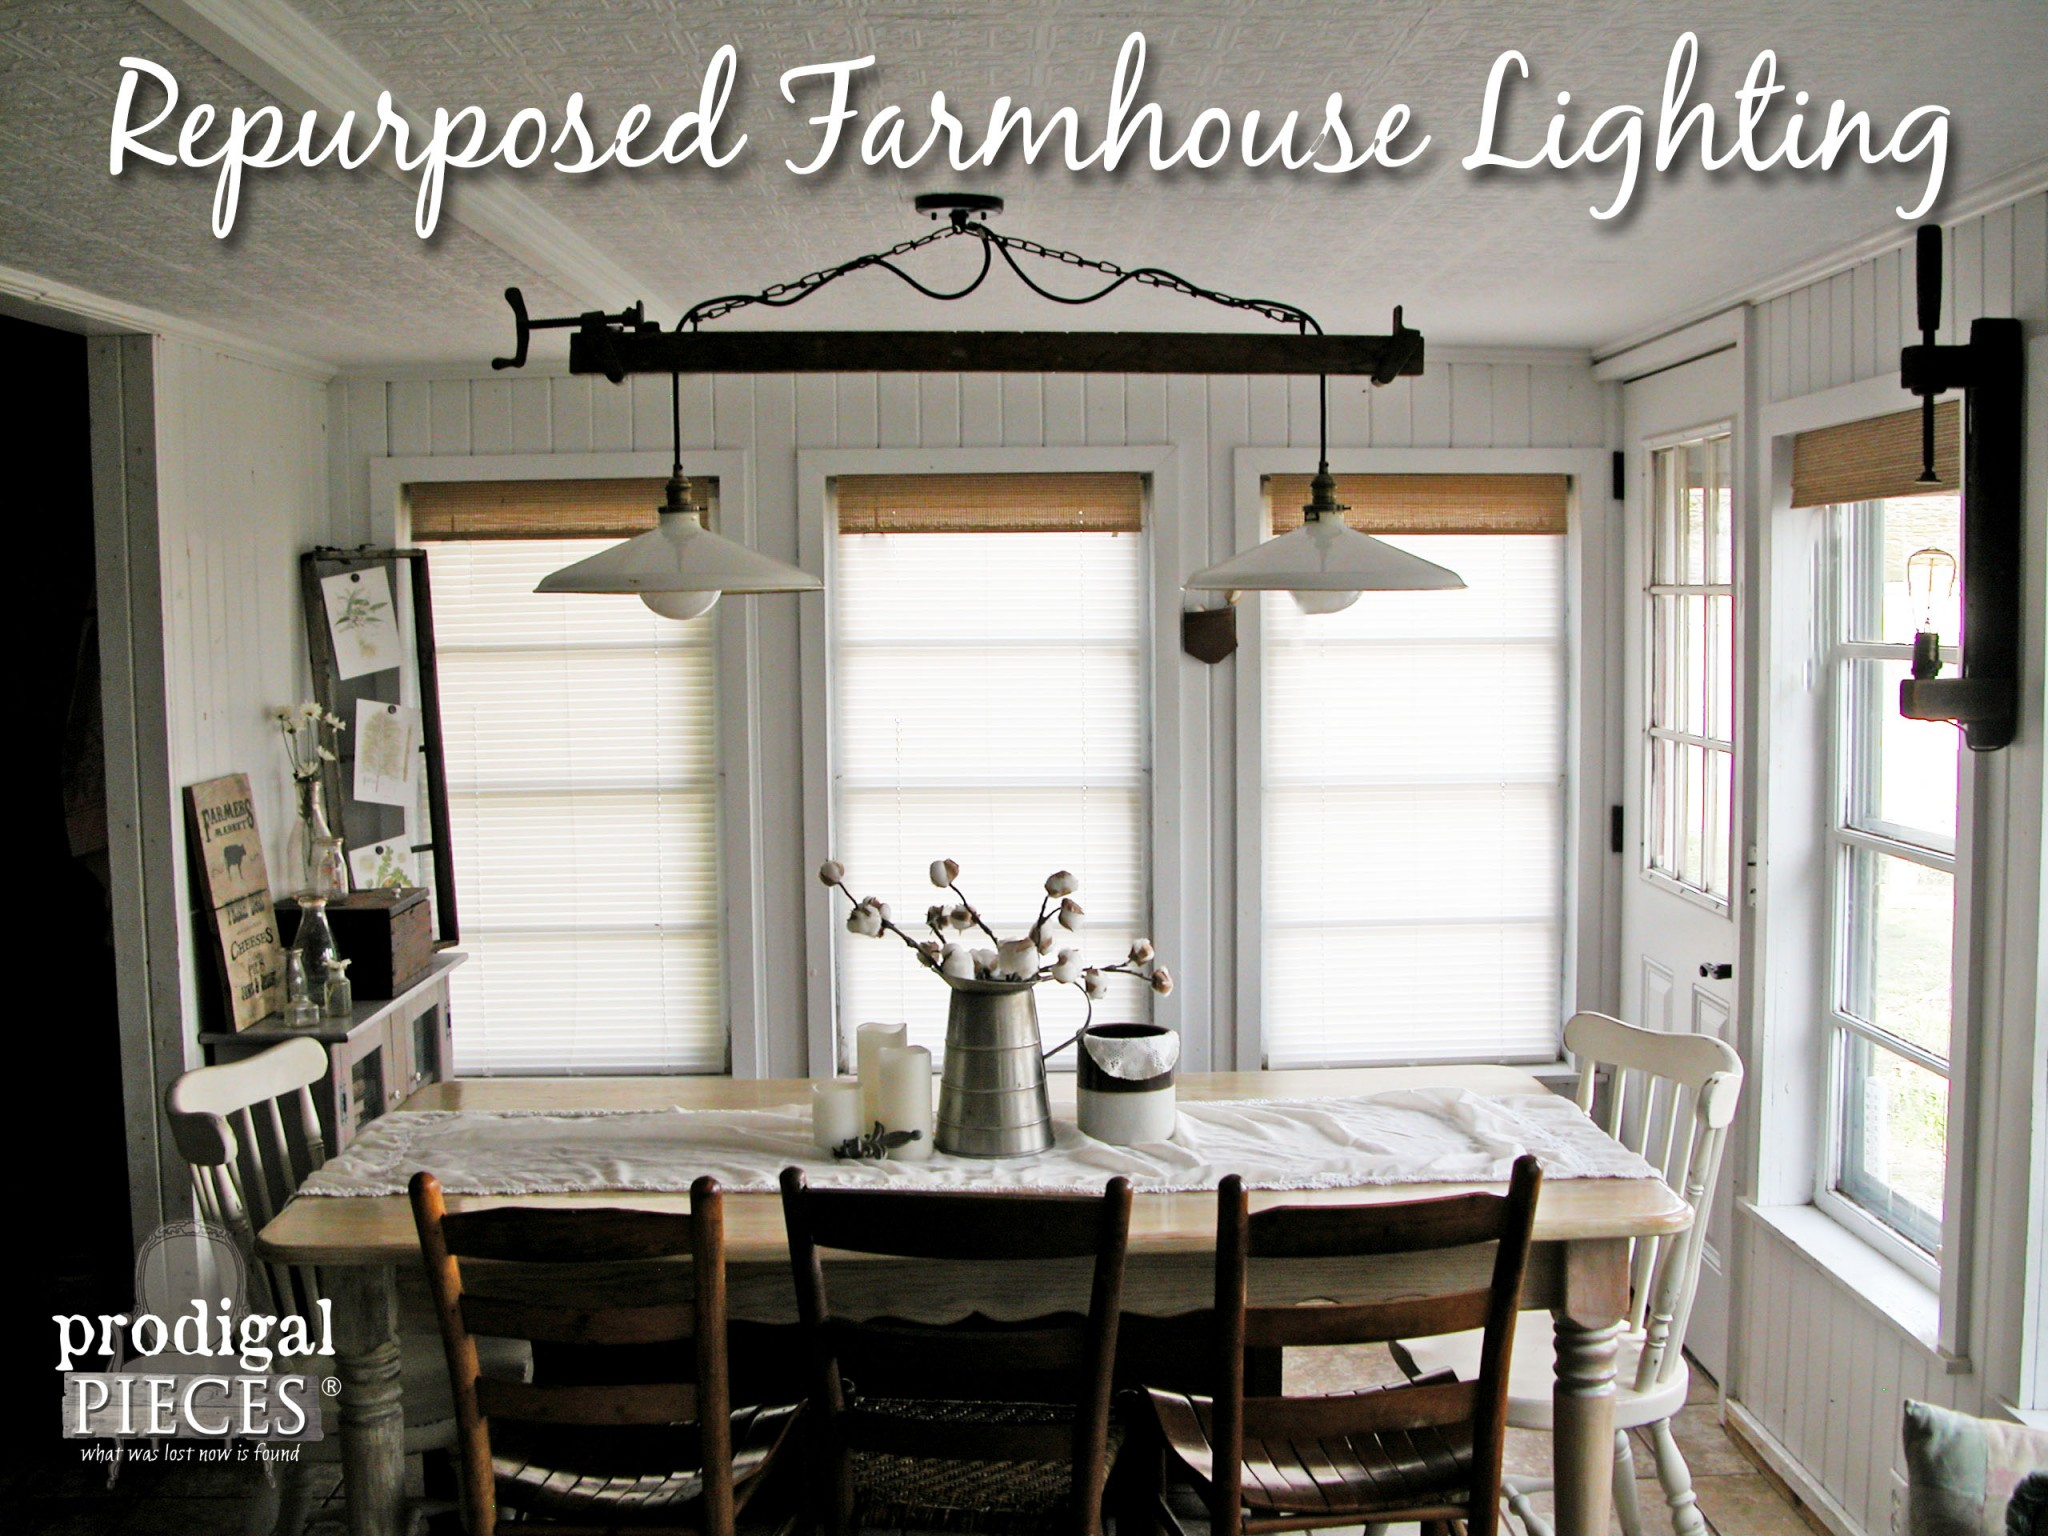 Create Your Own Farmhouse Lighting with this Step-by-Step DIY Tutorial by Prodigal Pieces | www.prodigalpieces.com